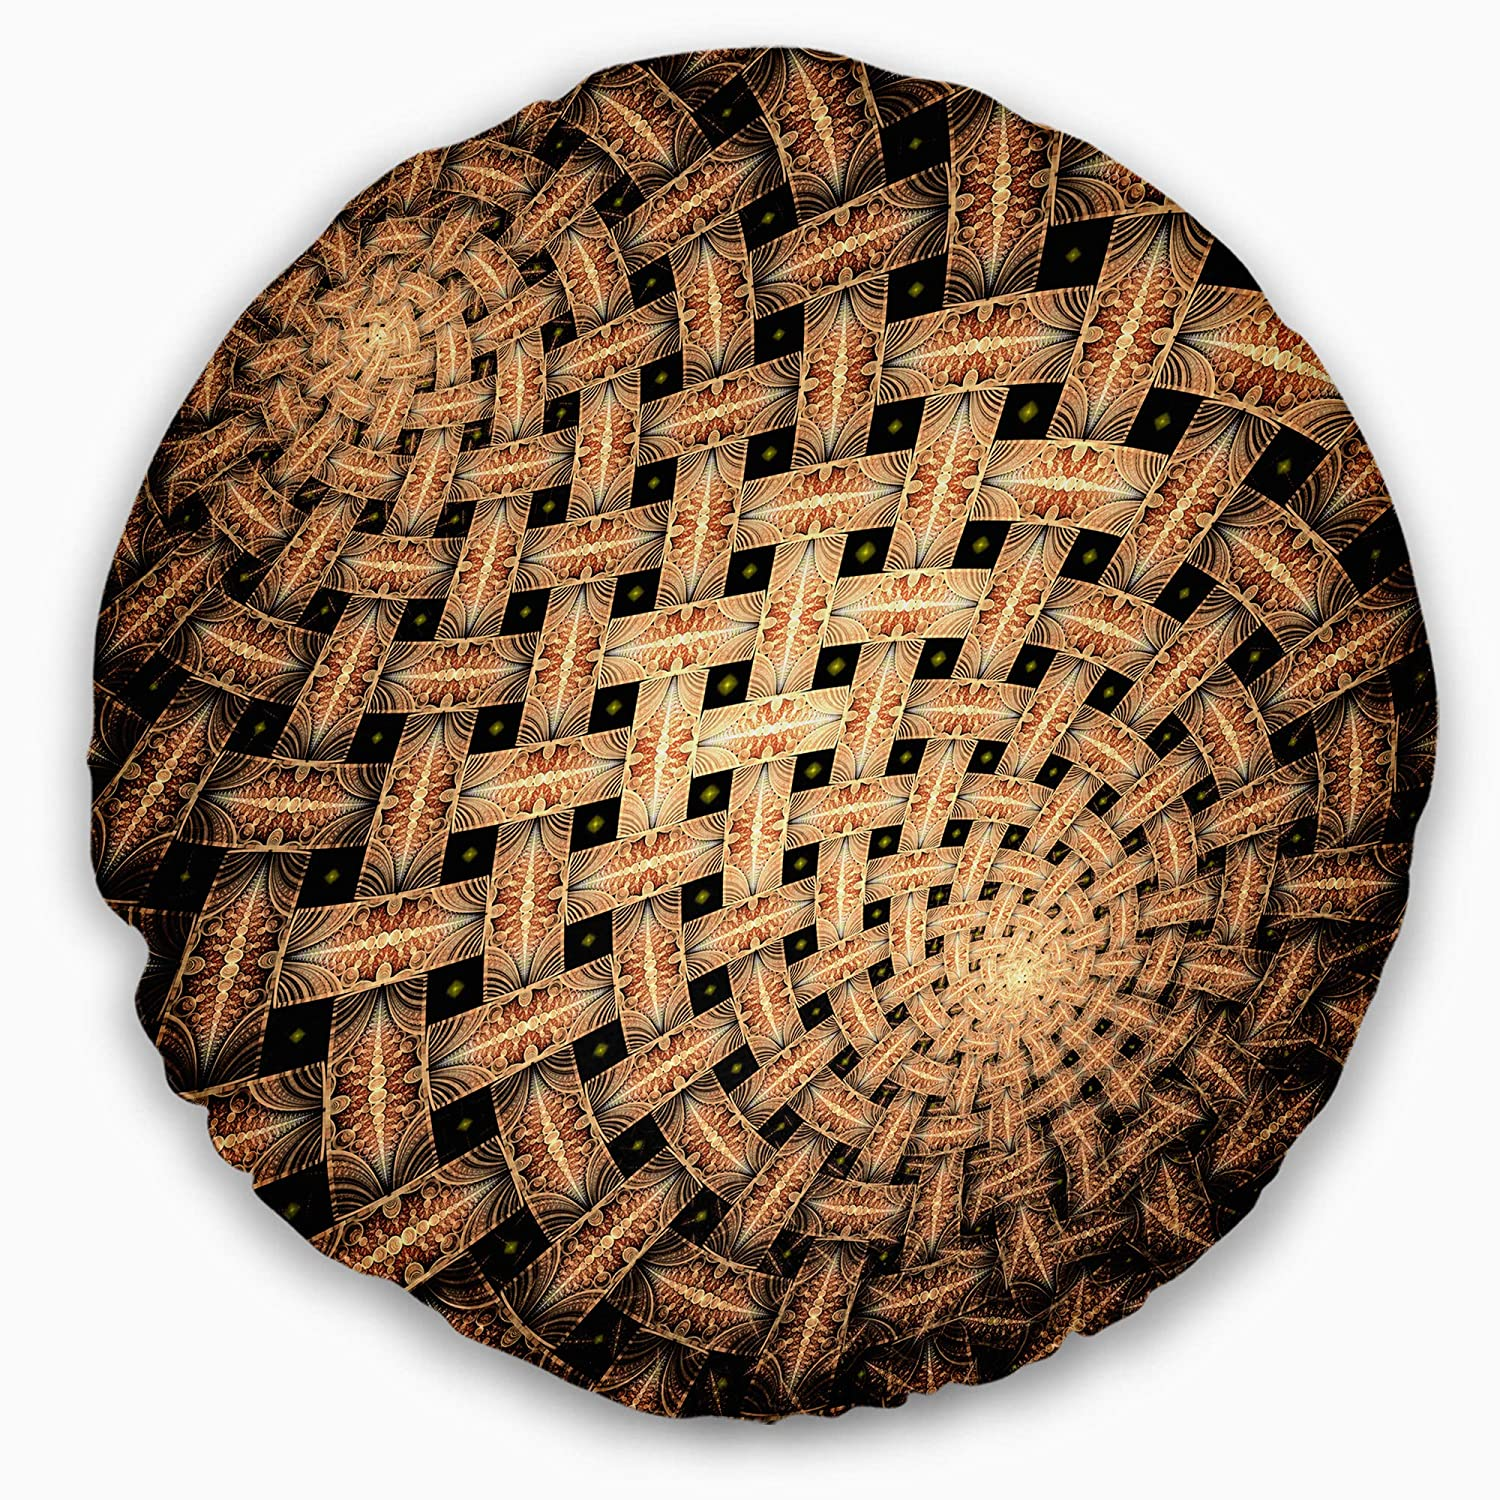 Designart CU16467-16-16-C Symmetrical Brown Fractal Flower' Abstract Round Cushion Cover for Living Room, Sofa Throw Pillow 16 Inches, Insert Printed on Both Side